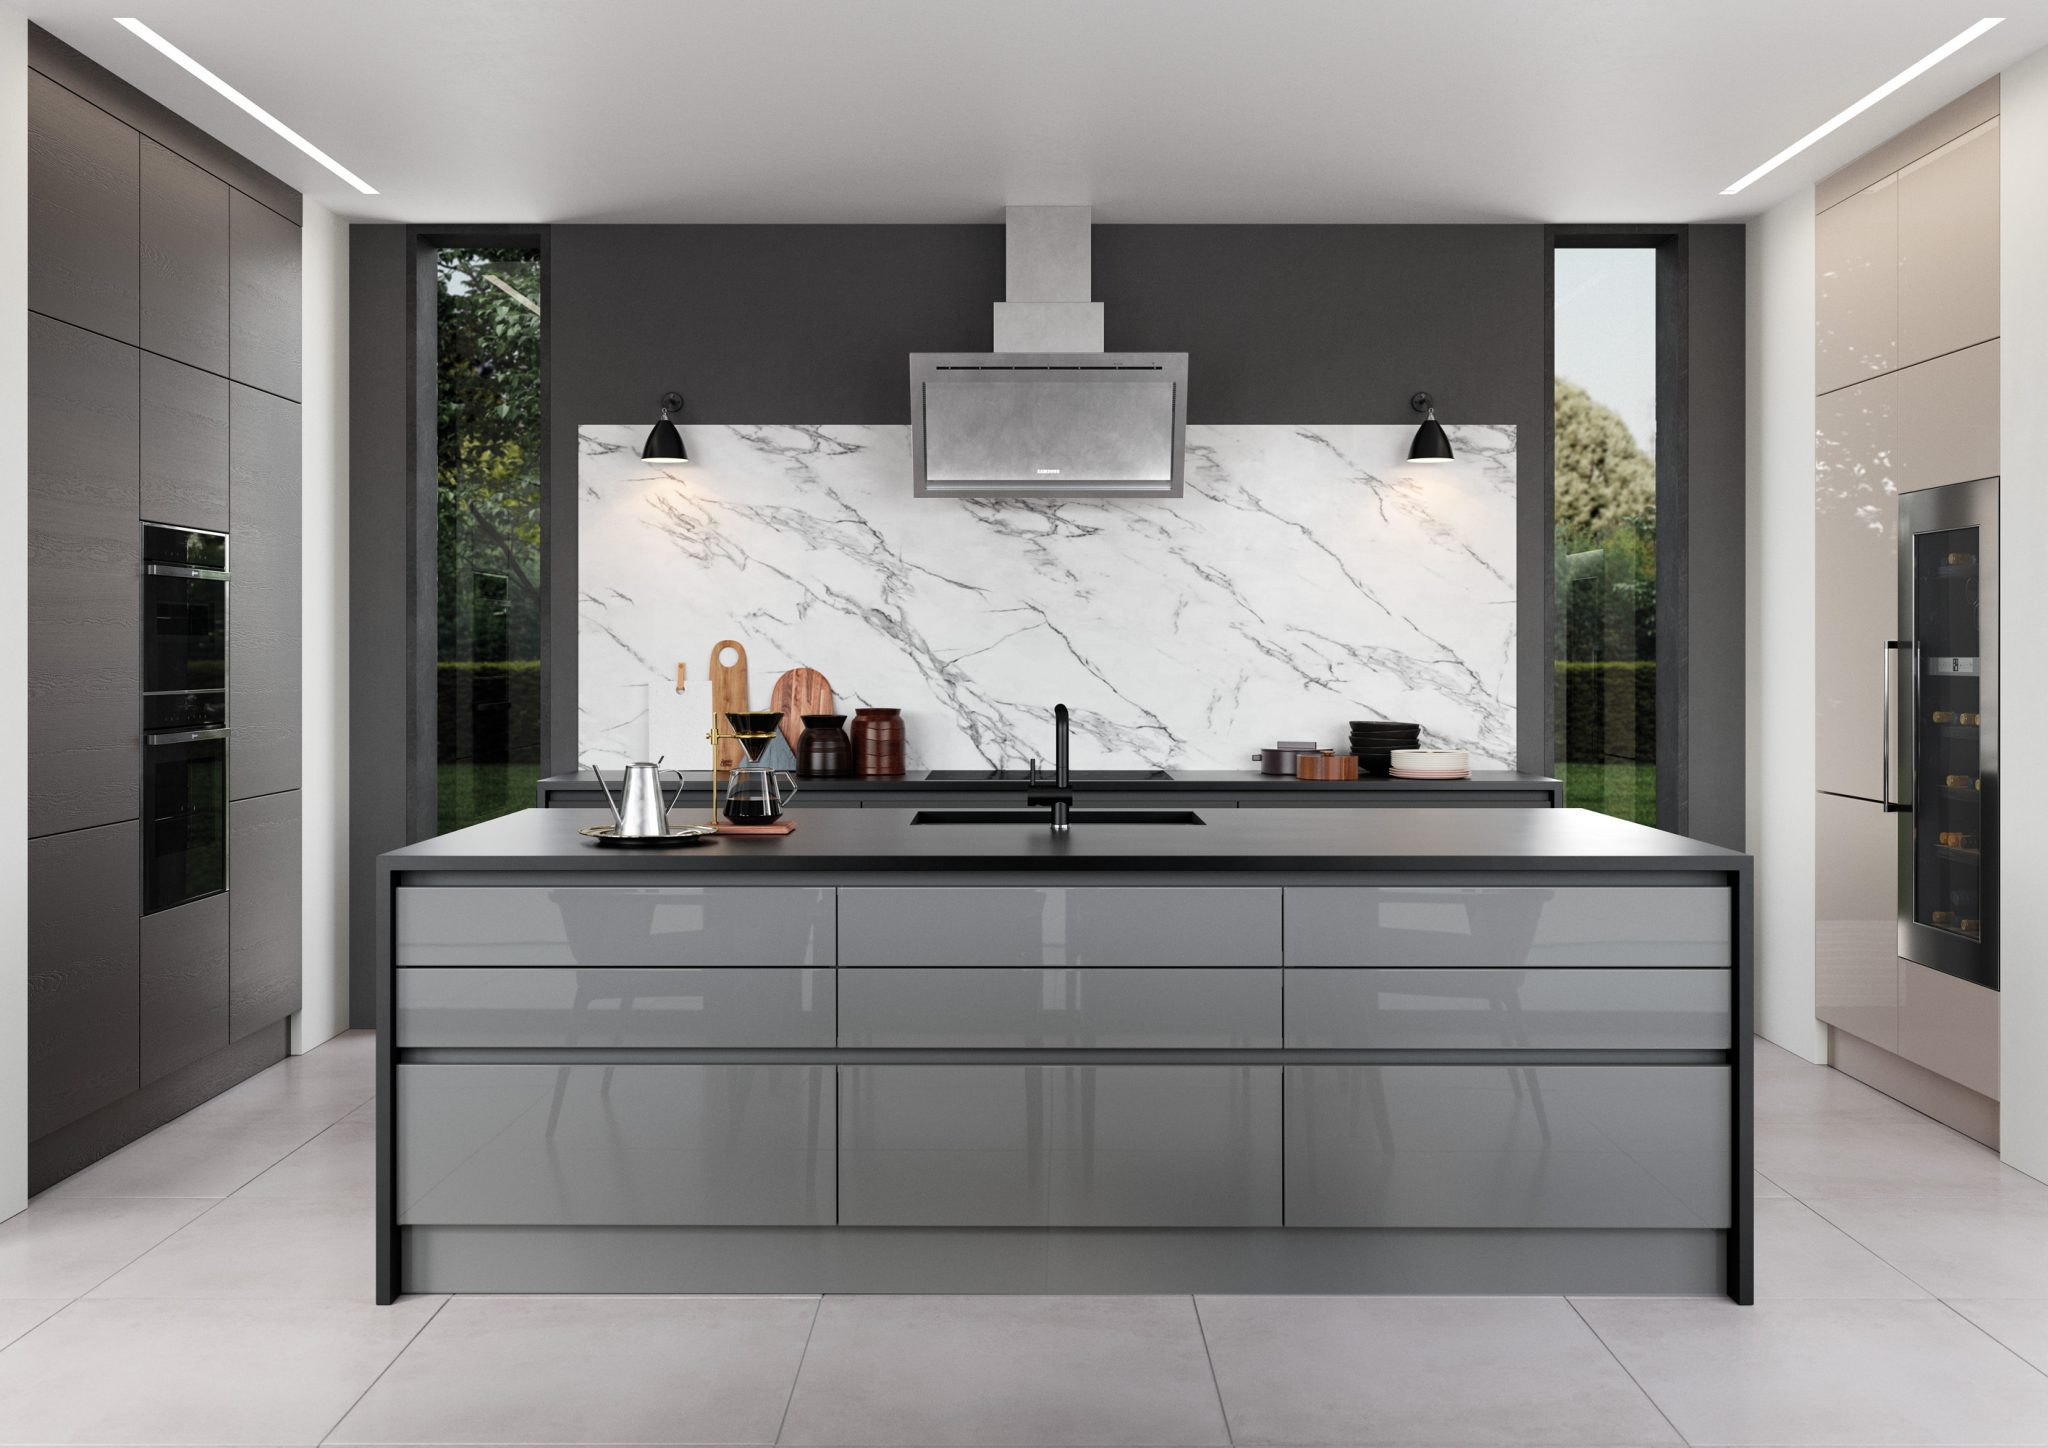 modern kitchen in grey with silestone marengo quartz worktop, handleless kitchens france, modern extractor fan, silestone splashback